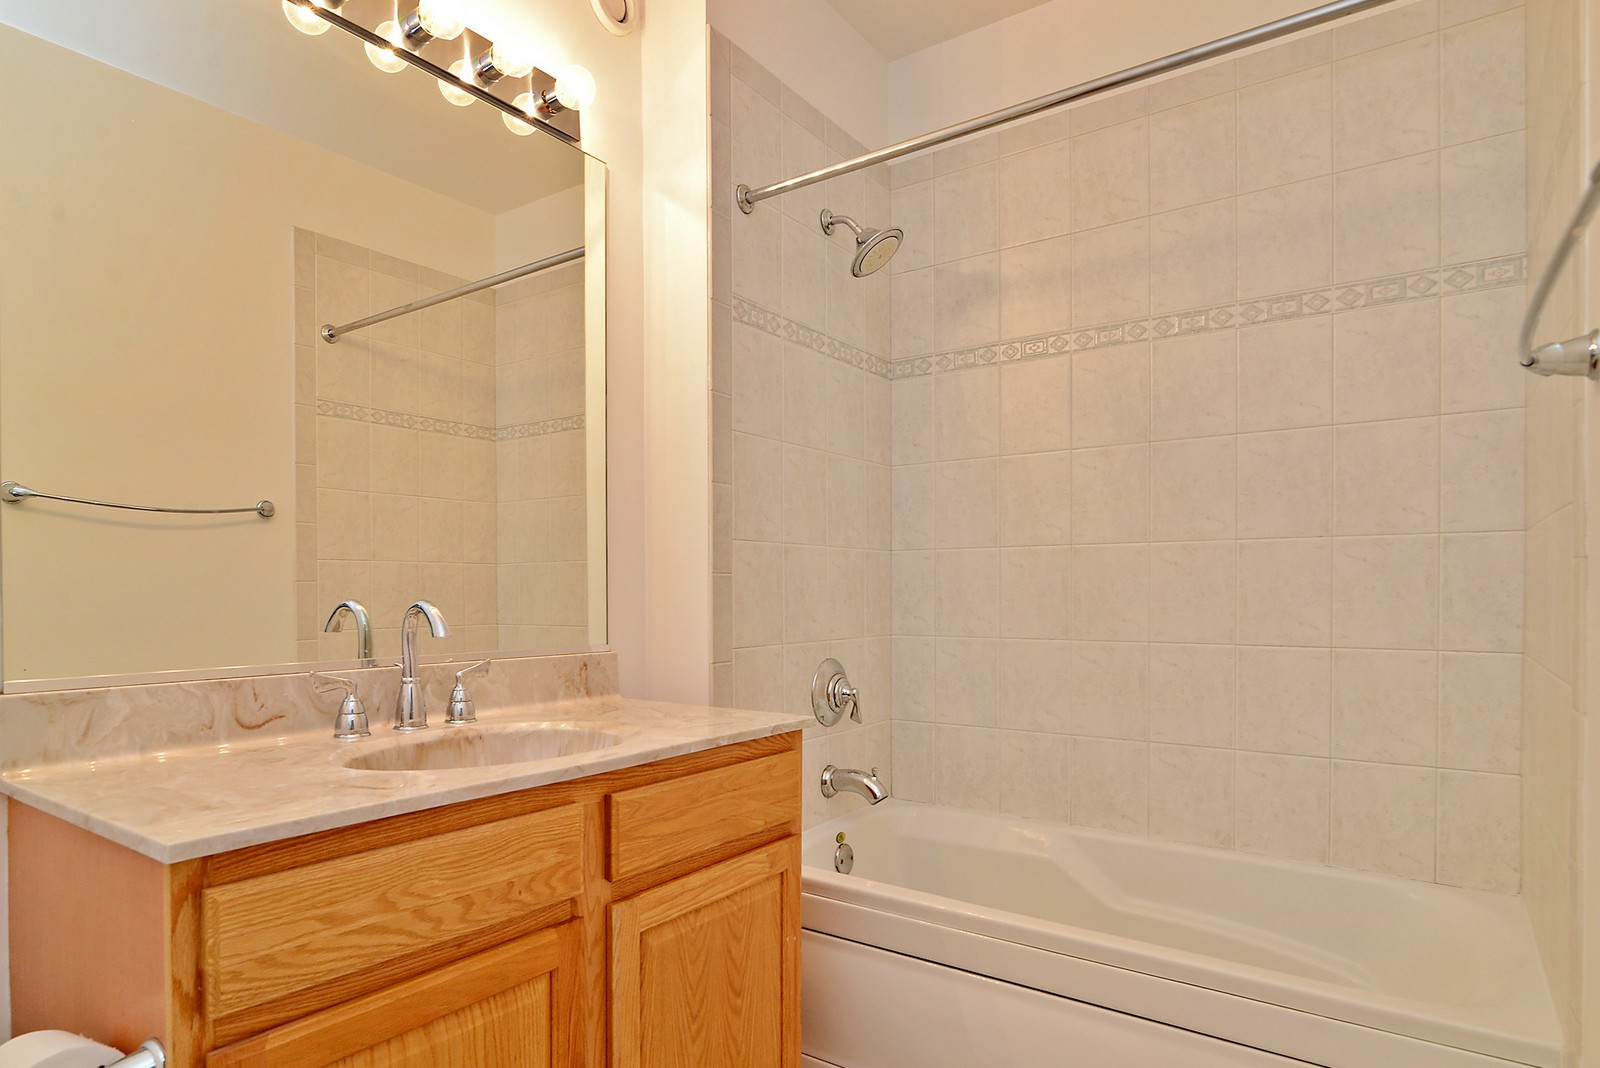 Real Estate Photography - 1111 S Wabash, Apt 703, Chicago, IL, 60605 - Master Bathroom